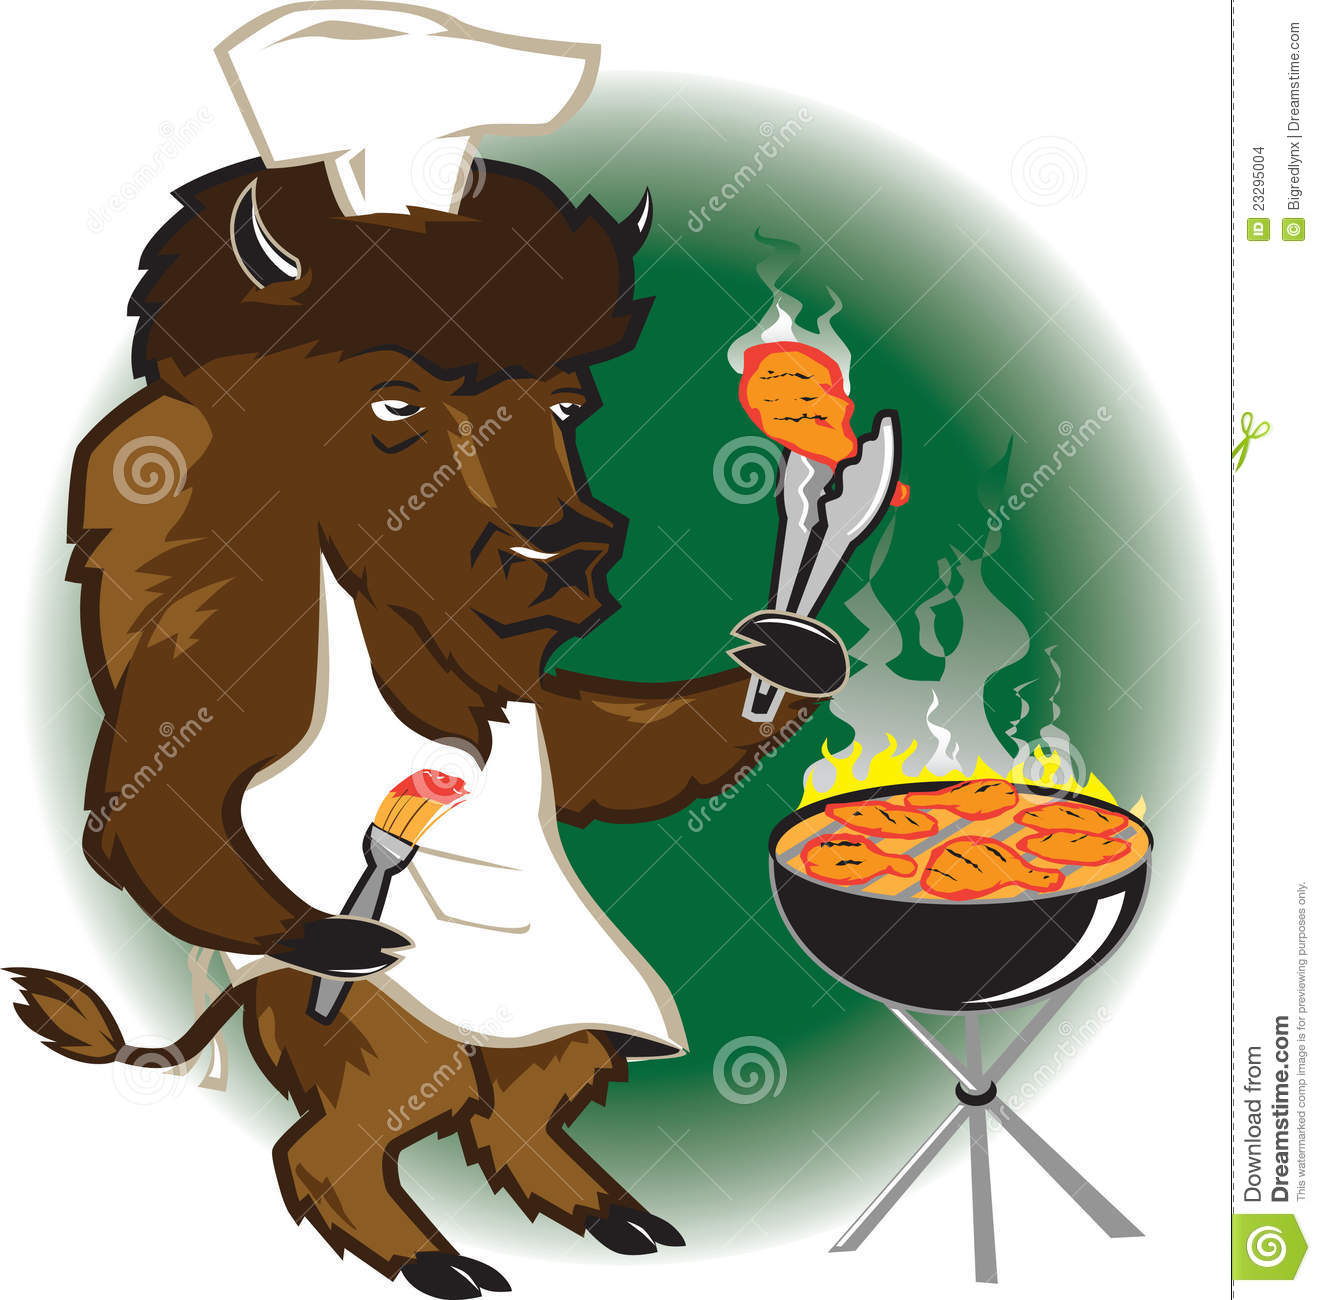 bison grill chef stock vector. illustration of grill - 23295004